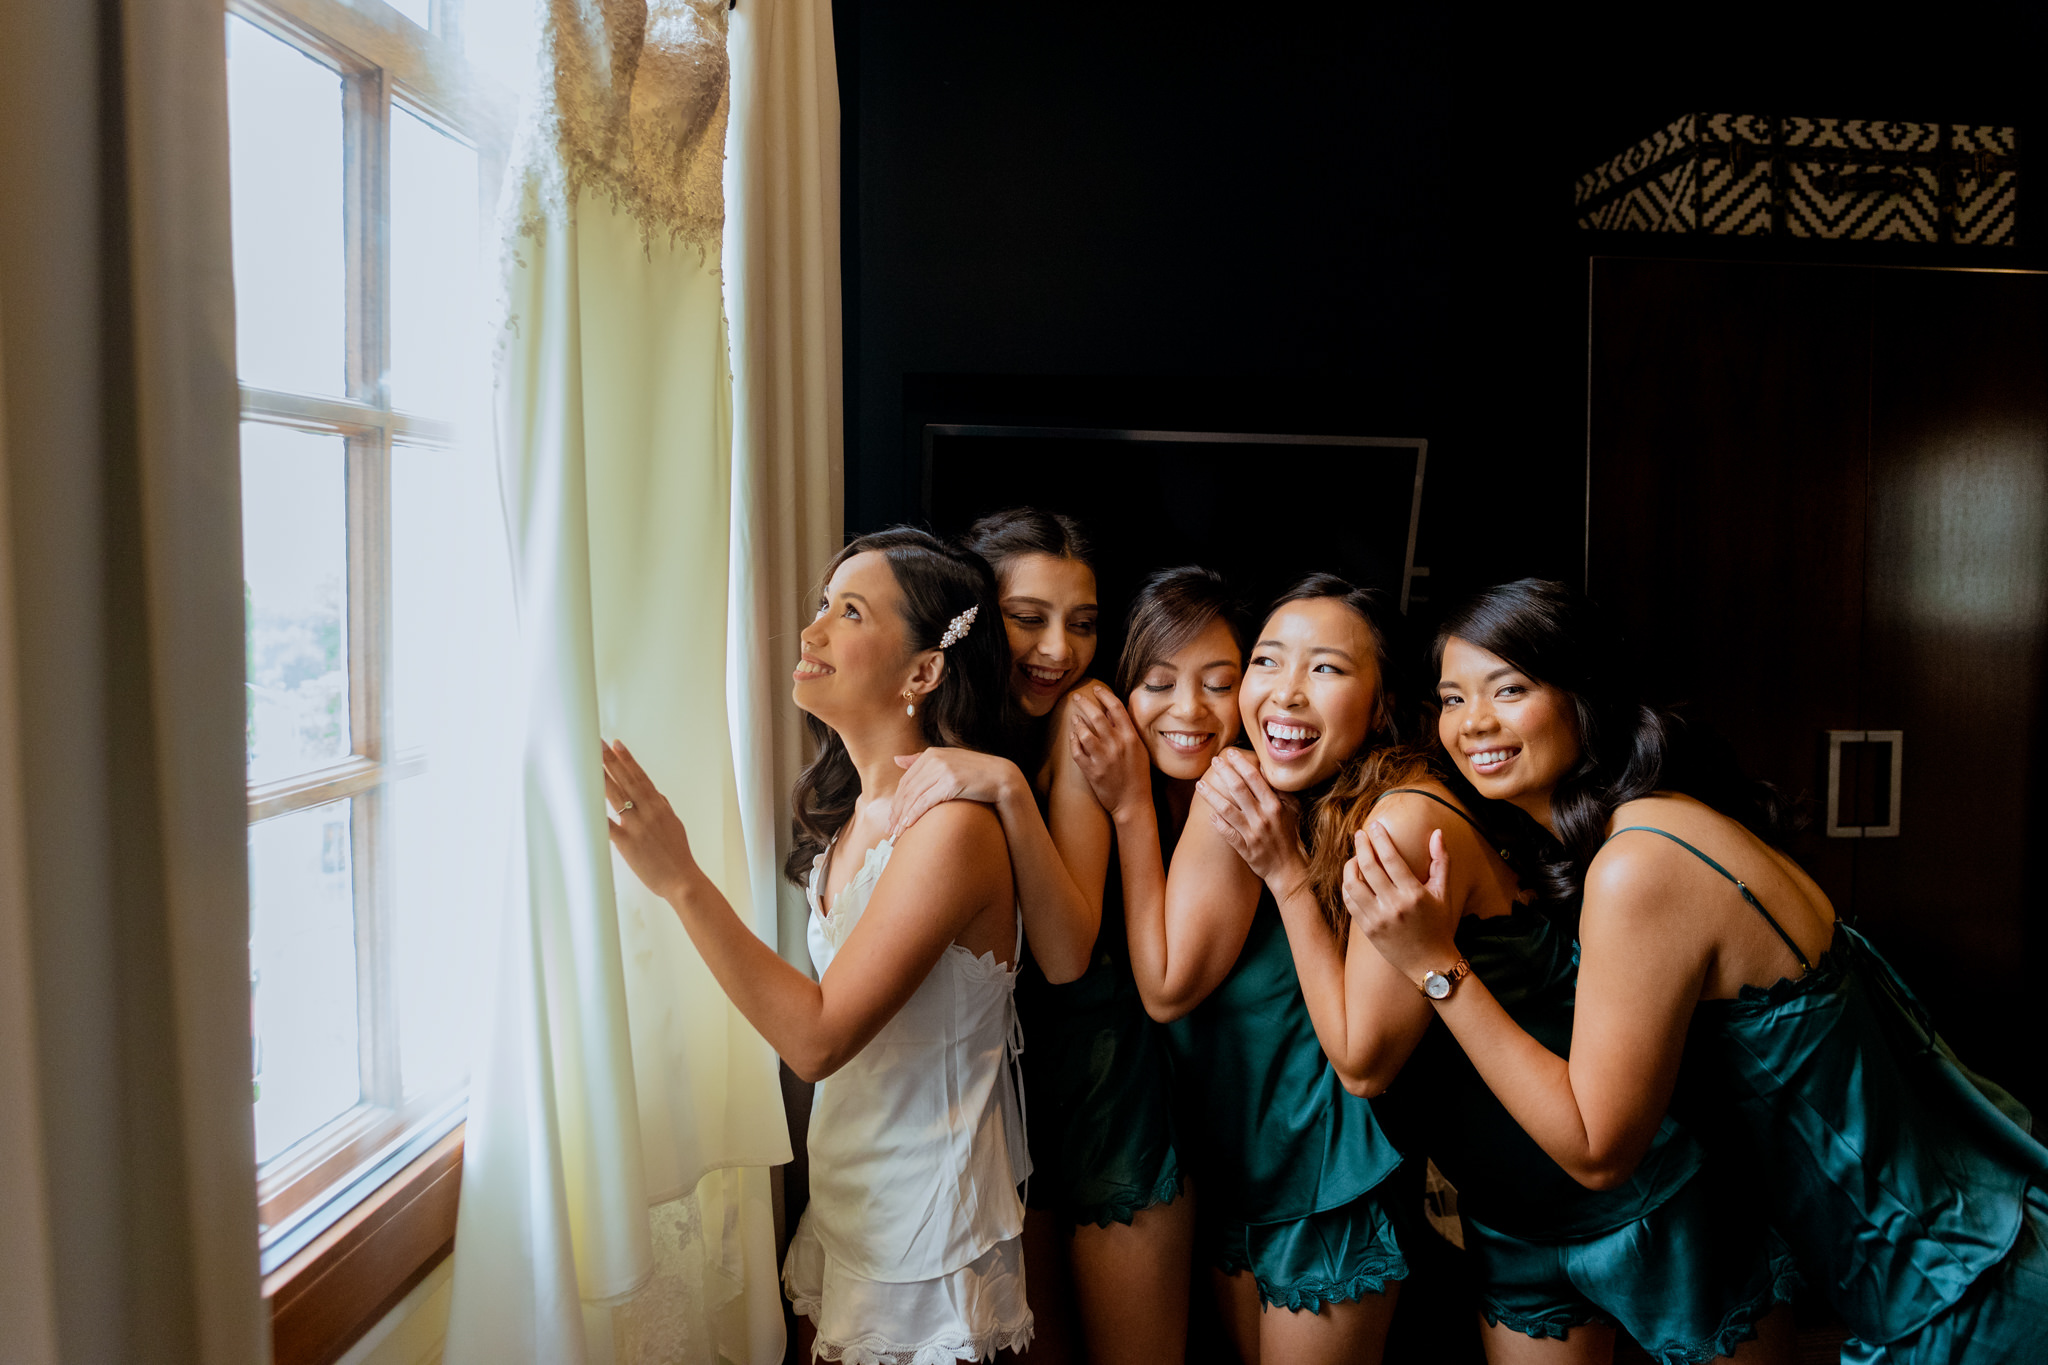 Bride admiring her dress in windowsill whilst bridesmaids playfully hug her from behind